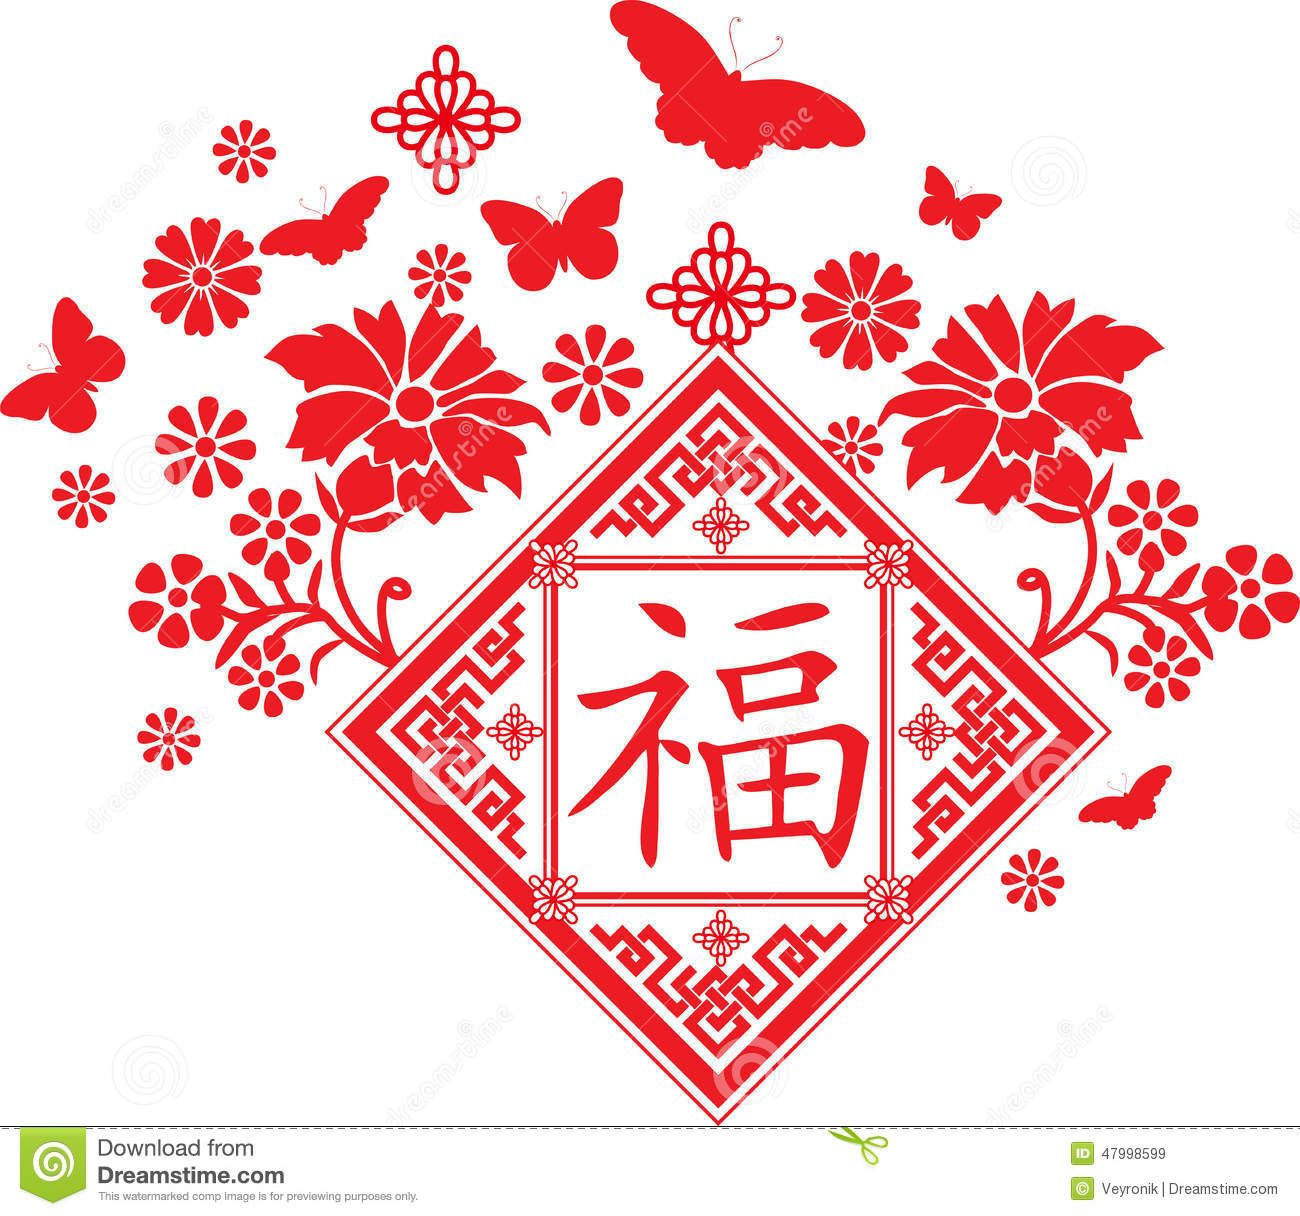 Floral chinese new year ornament stock vector image 47998599 photo about traditional chinese spring festival ornament with flowers and butterflies and symbol for happiness 47998599 buycottarizona Gallery